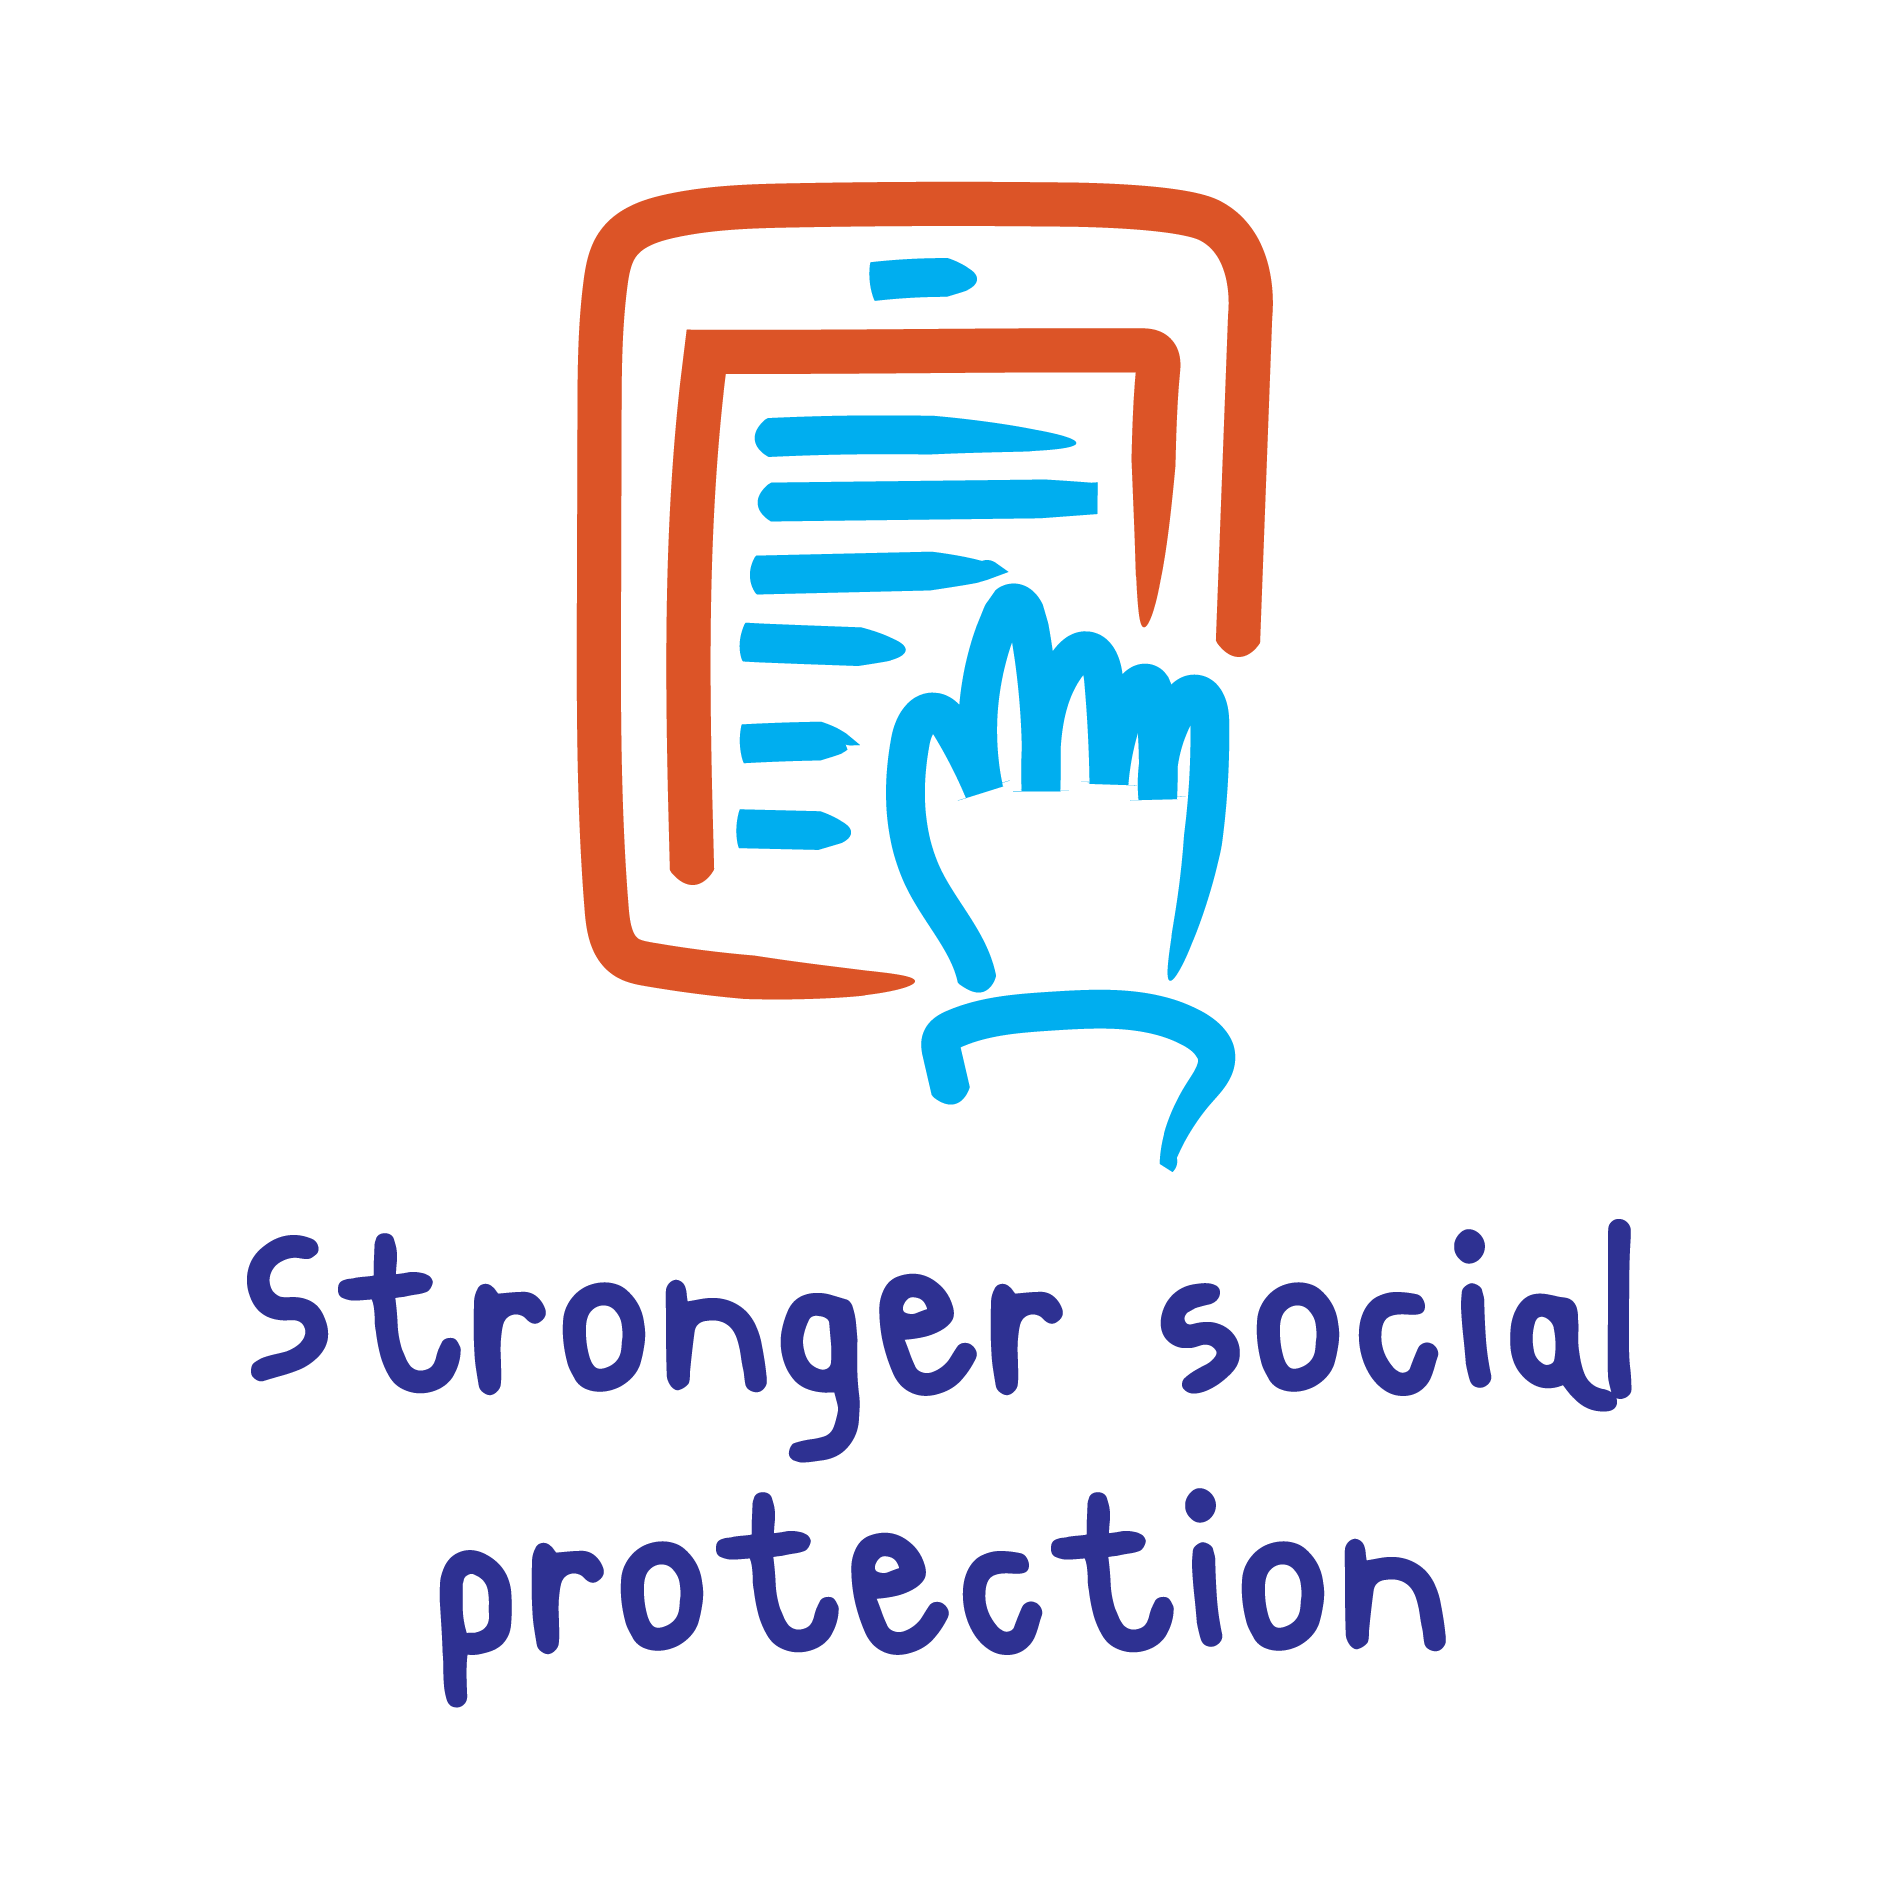 Stronger social protection